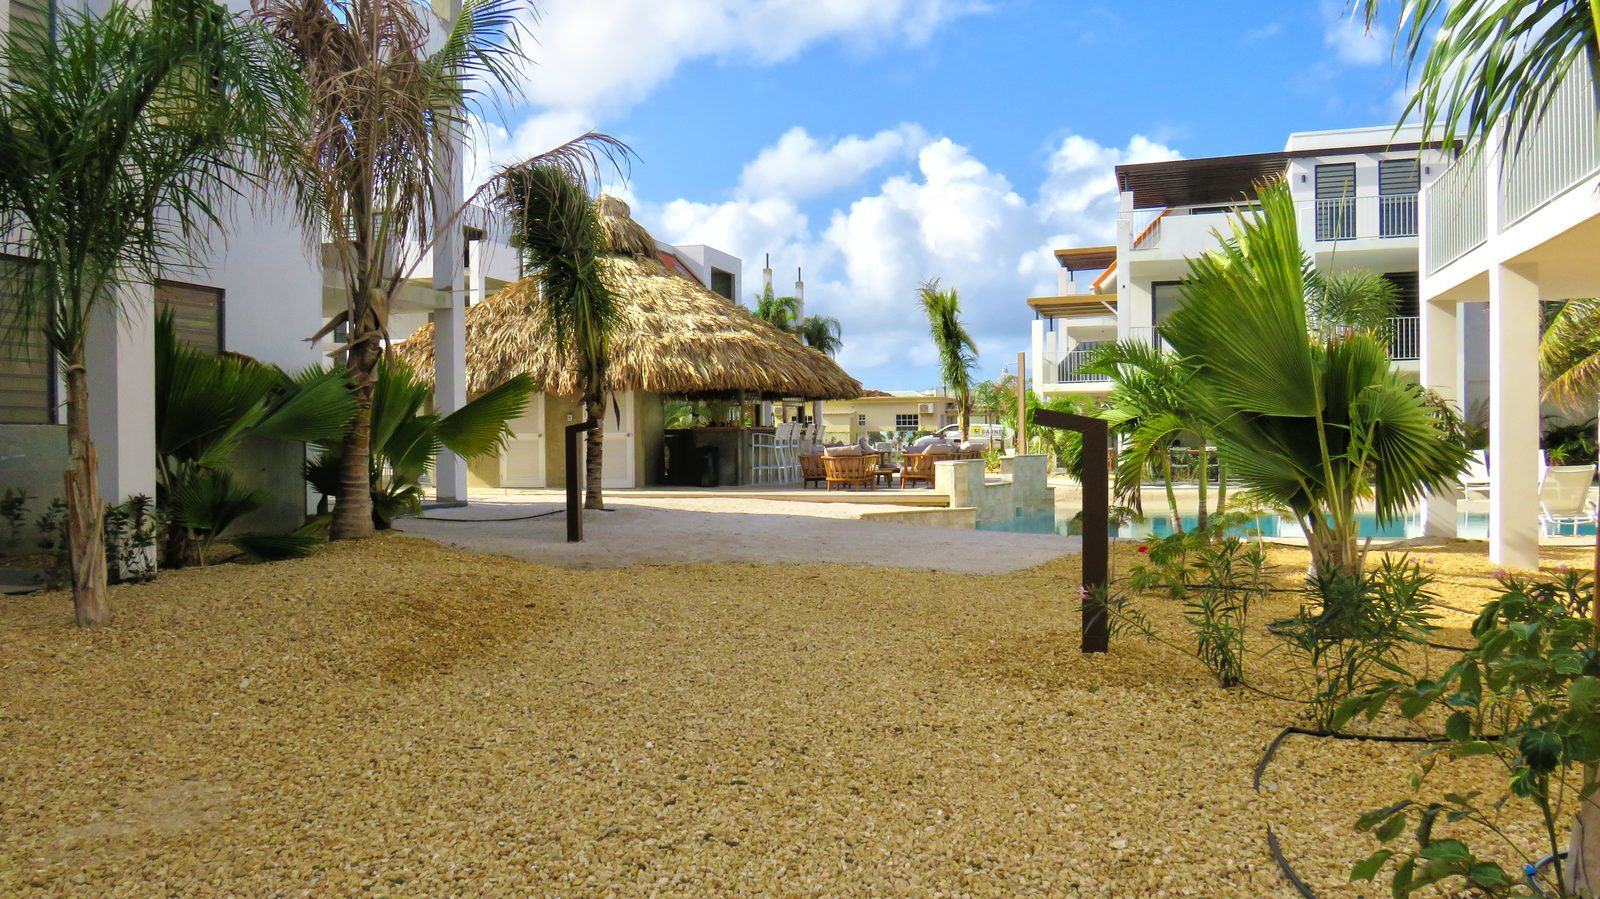 Resort Bonaire is one of the many resorts on this beautiful island. Take a look at more pictures of our facilities and the options of this island.